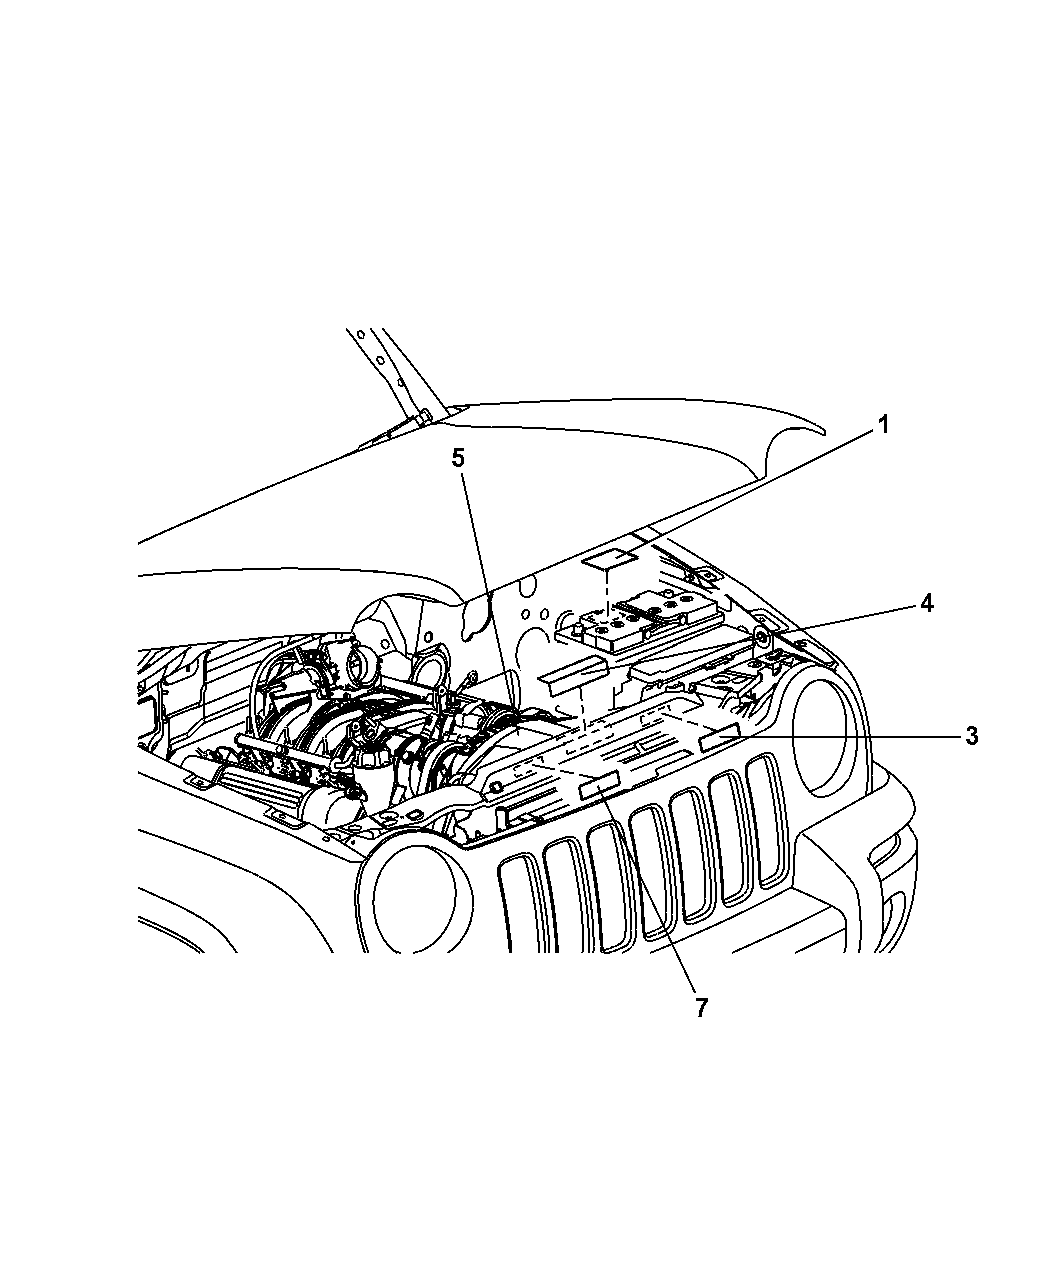 2003 jeep liberty engine diagram label  u2022 wiring diagram